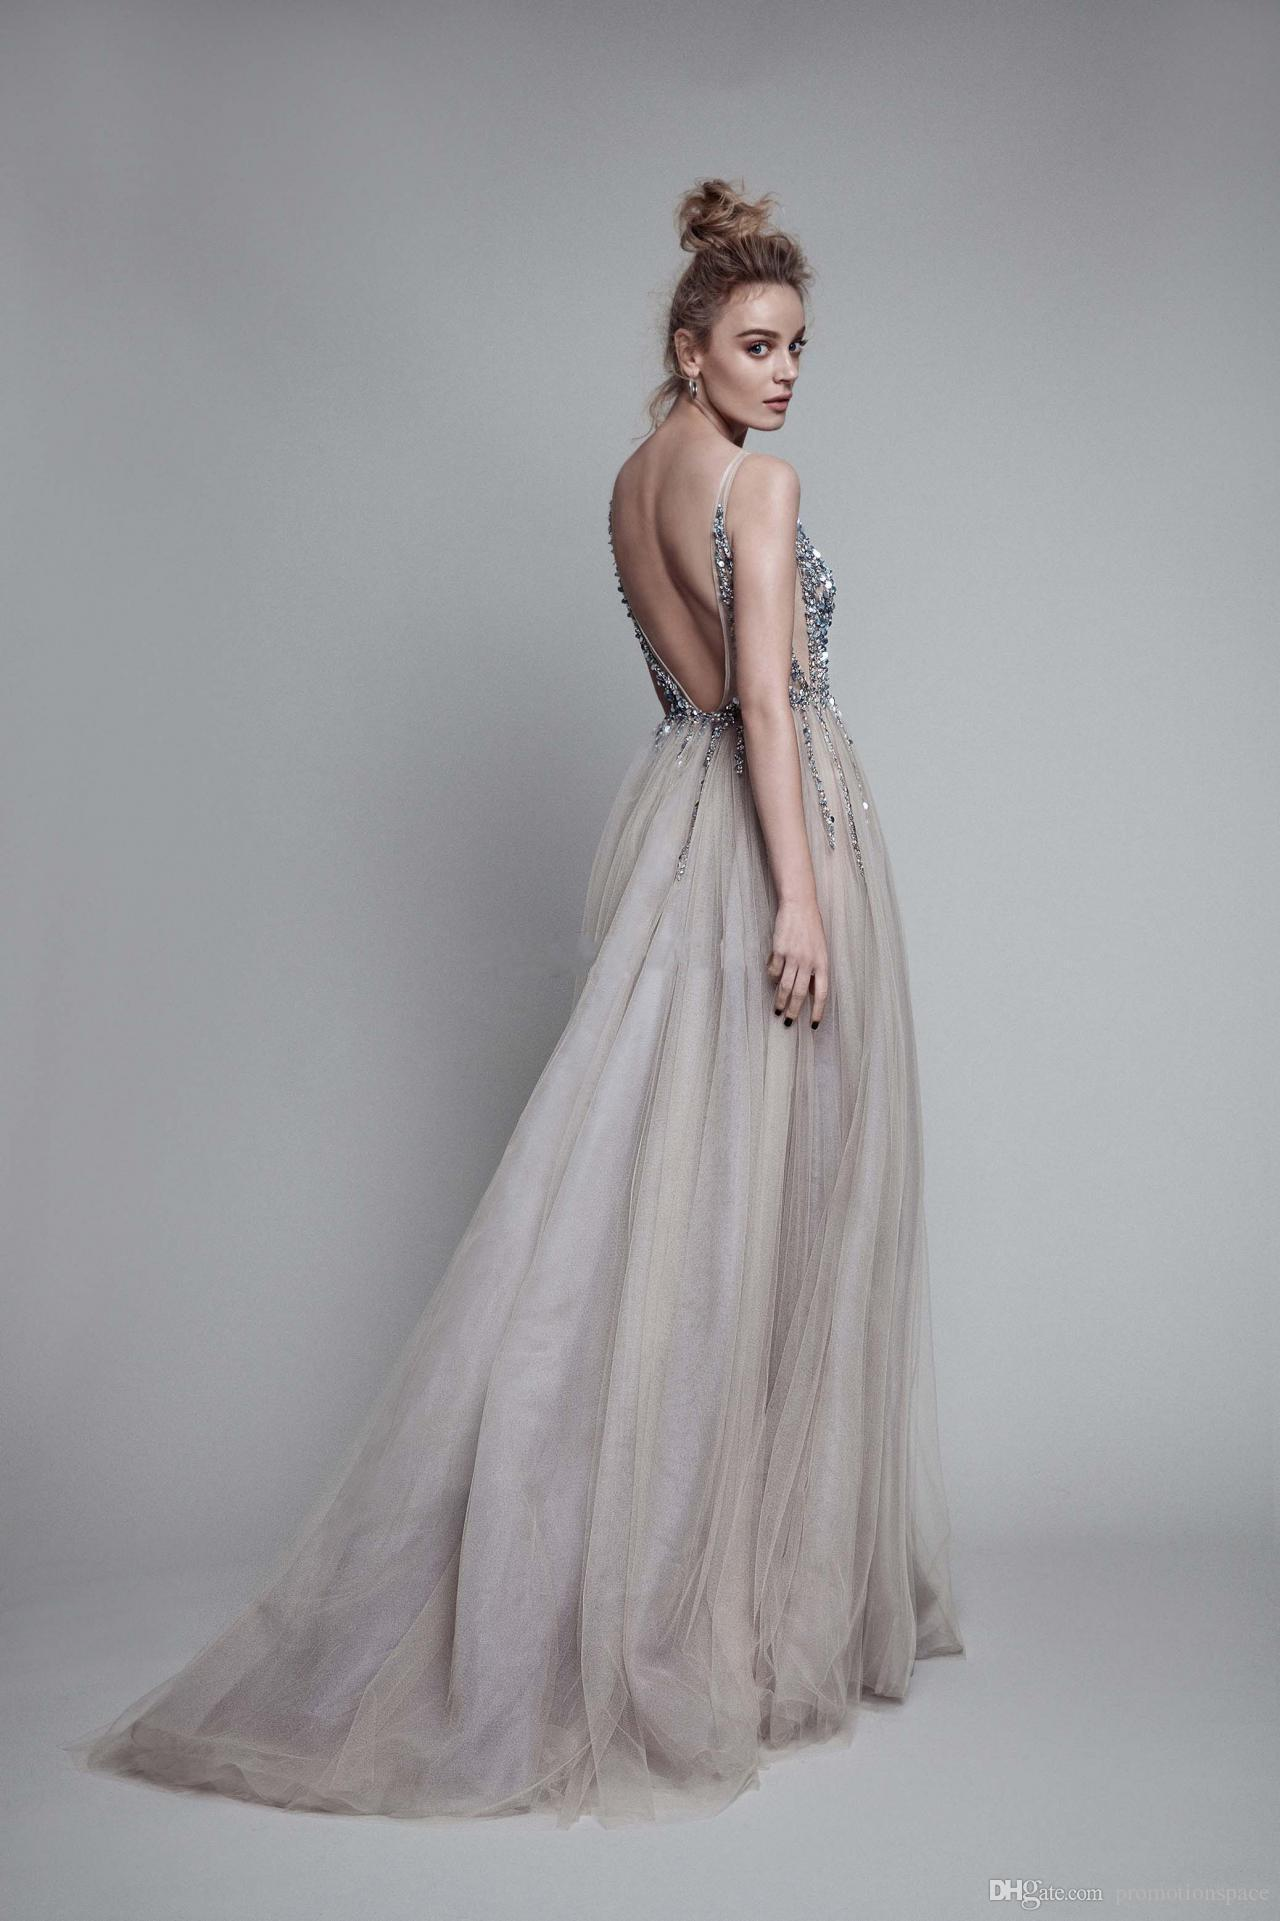 2017 Sexy Paolo Sebastian Evening Dresses Deep V Neck Beaded Crystal Tulle High Split Long Gray Evening Gowns Prom Party Dresses